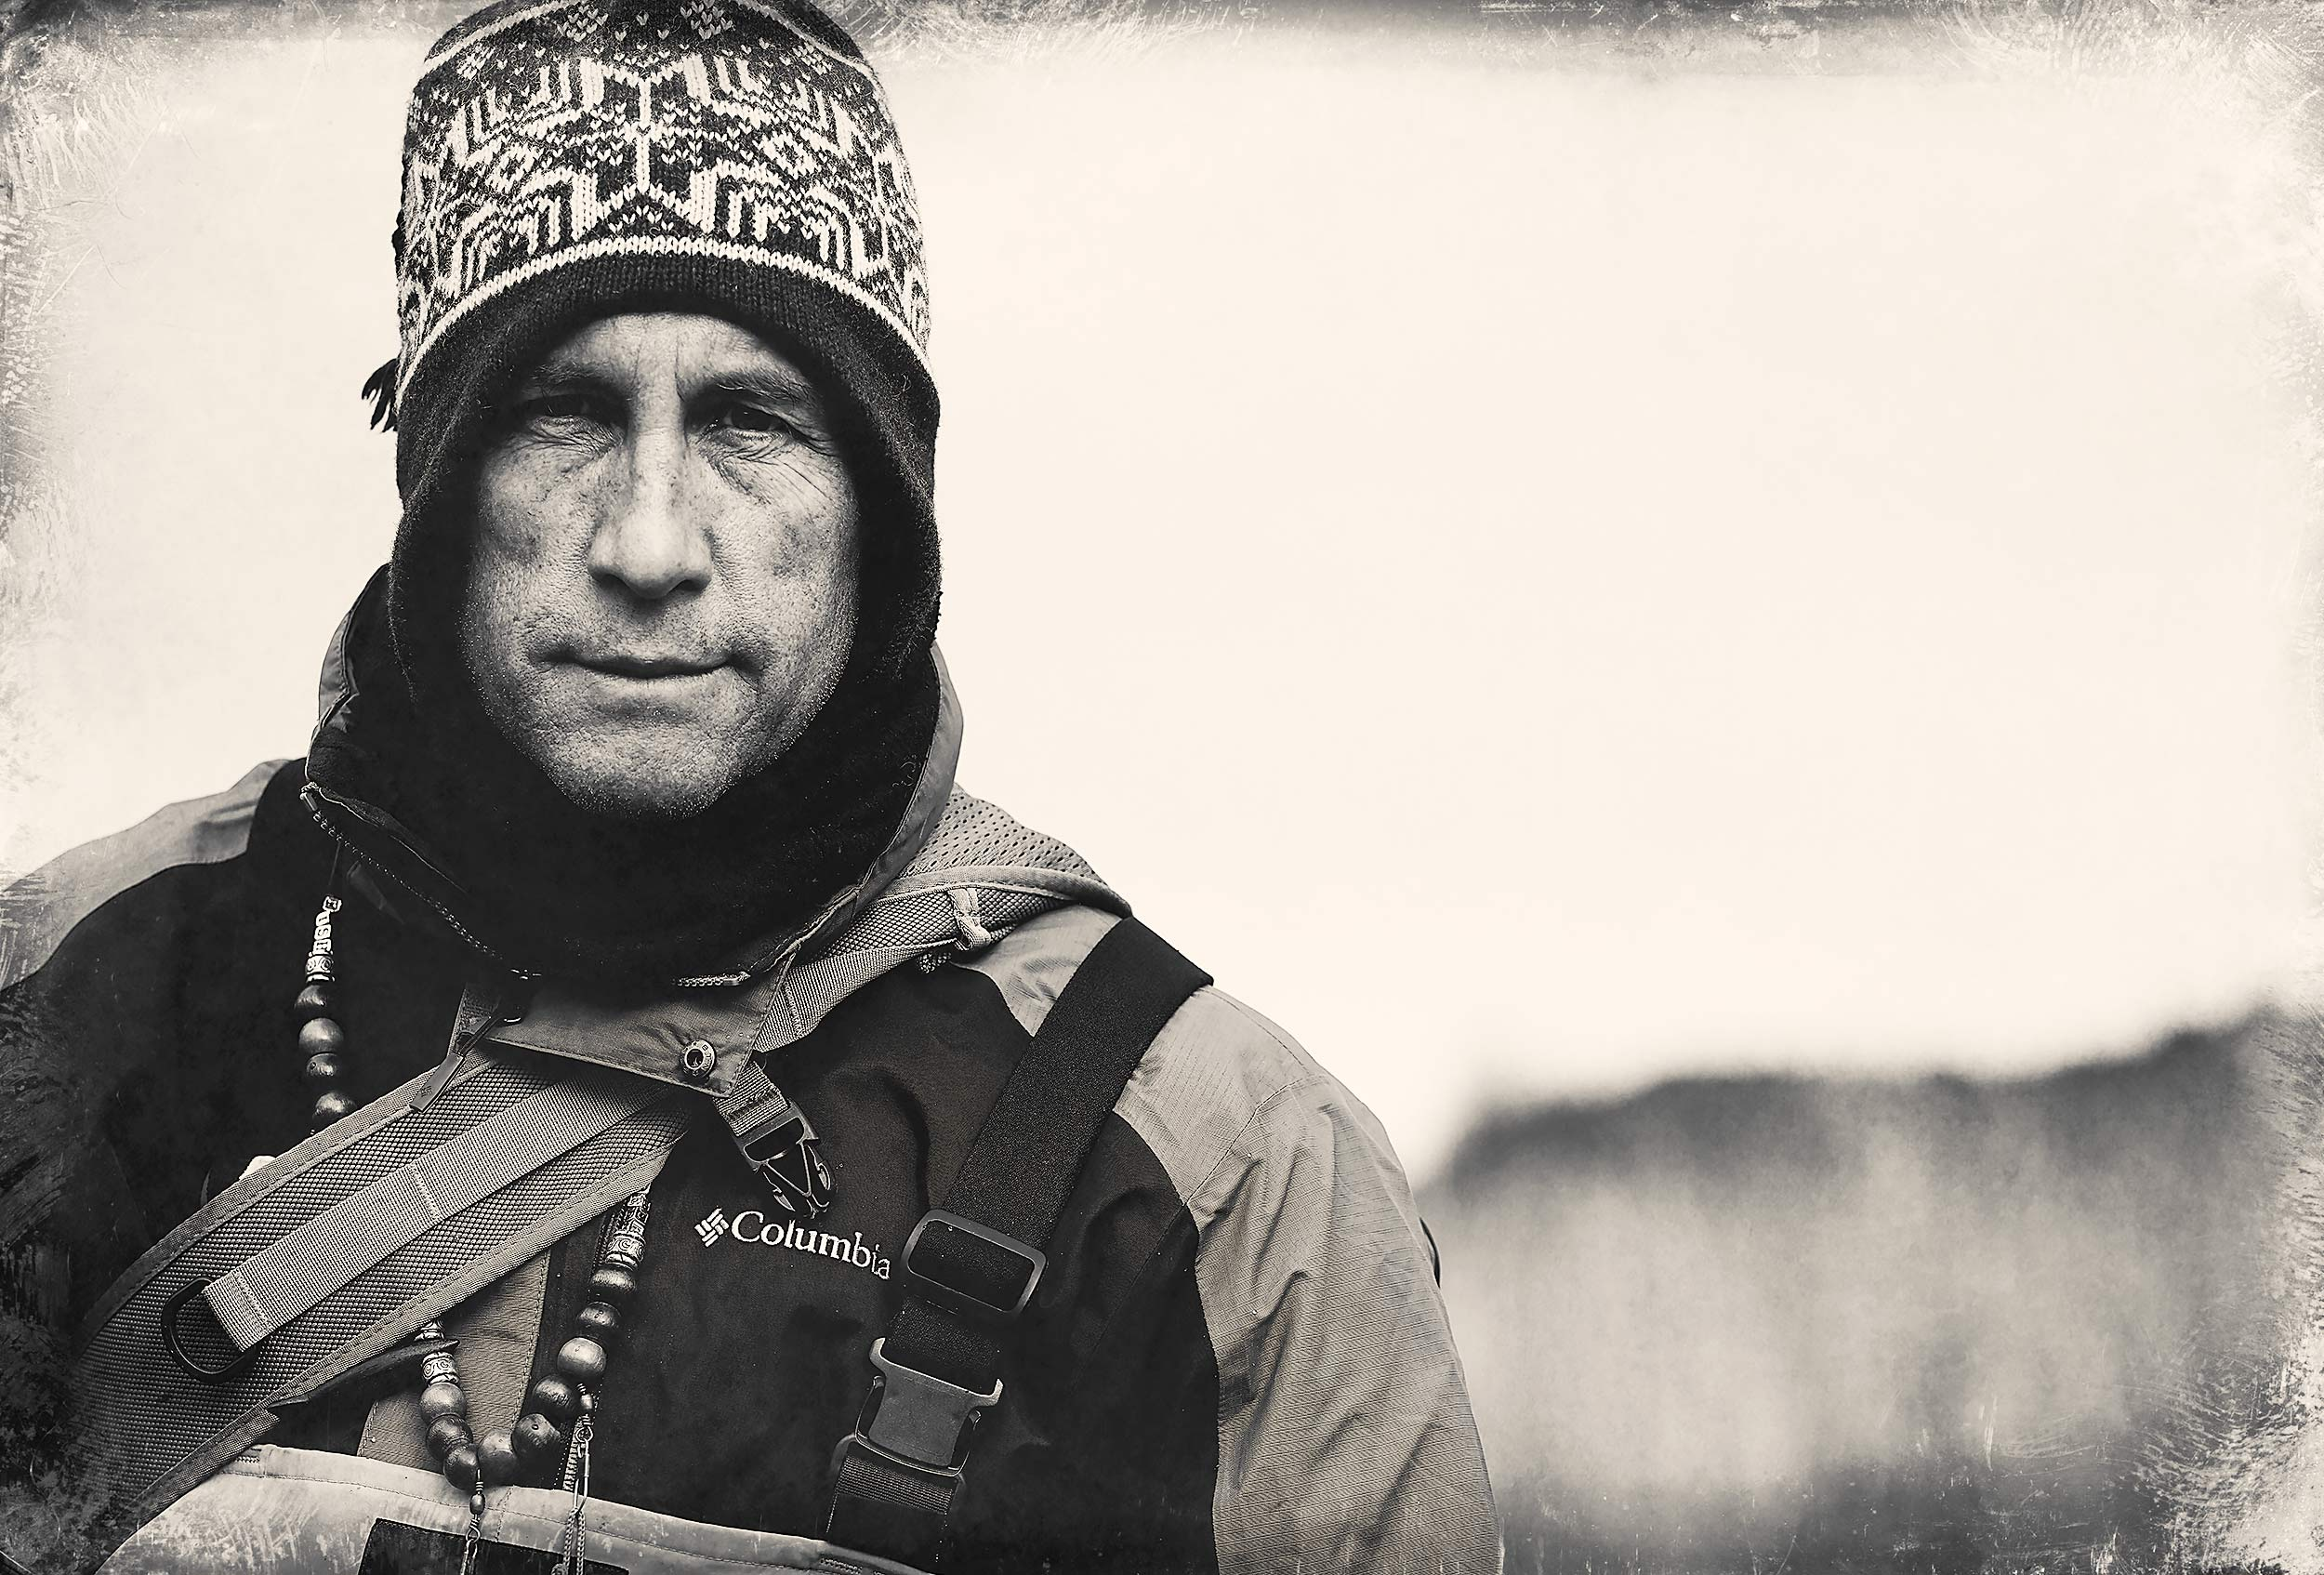 A portrait of a fly fisherman wearing winter clothing and looking at the camera